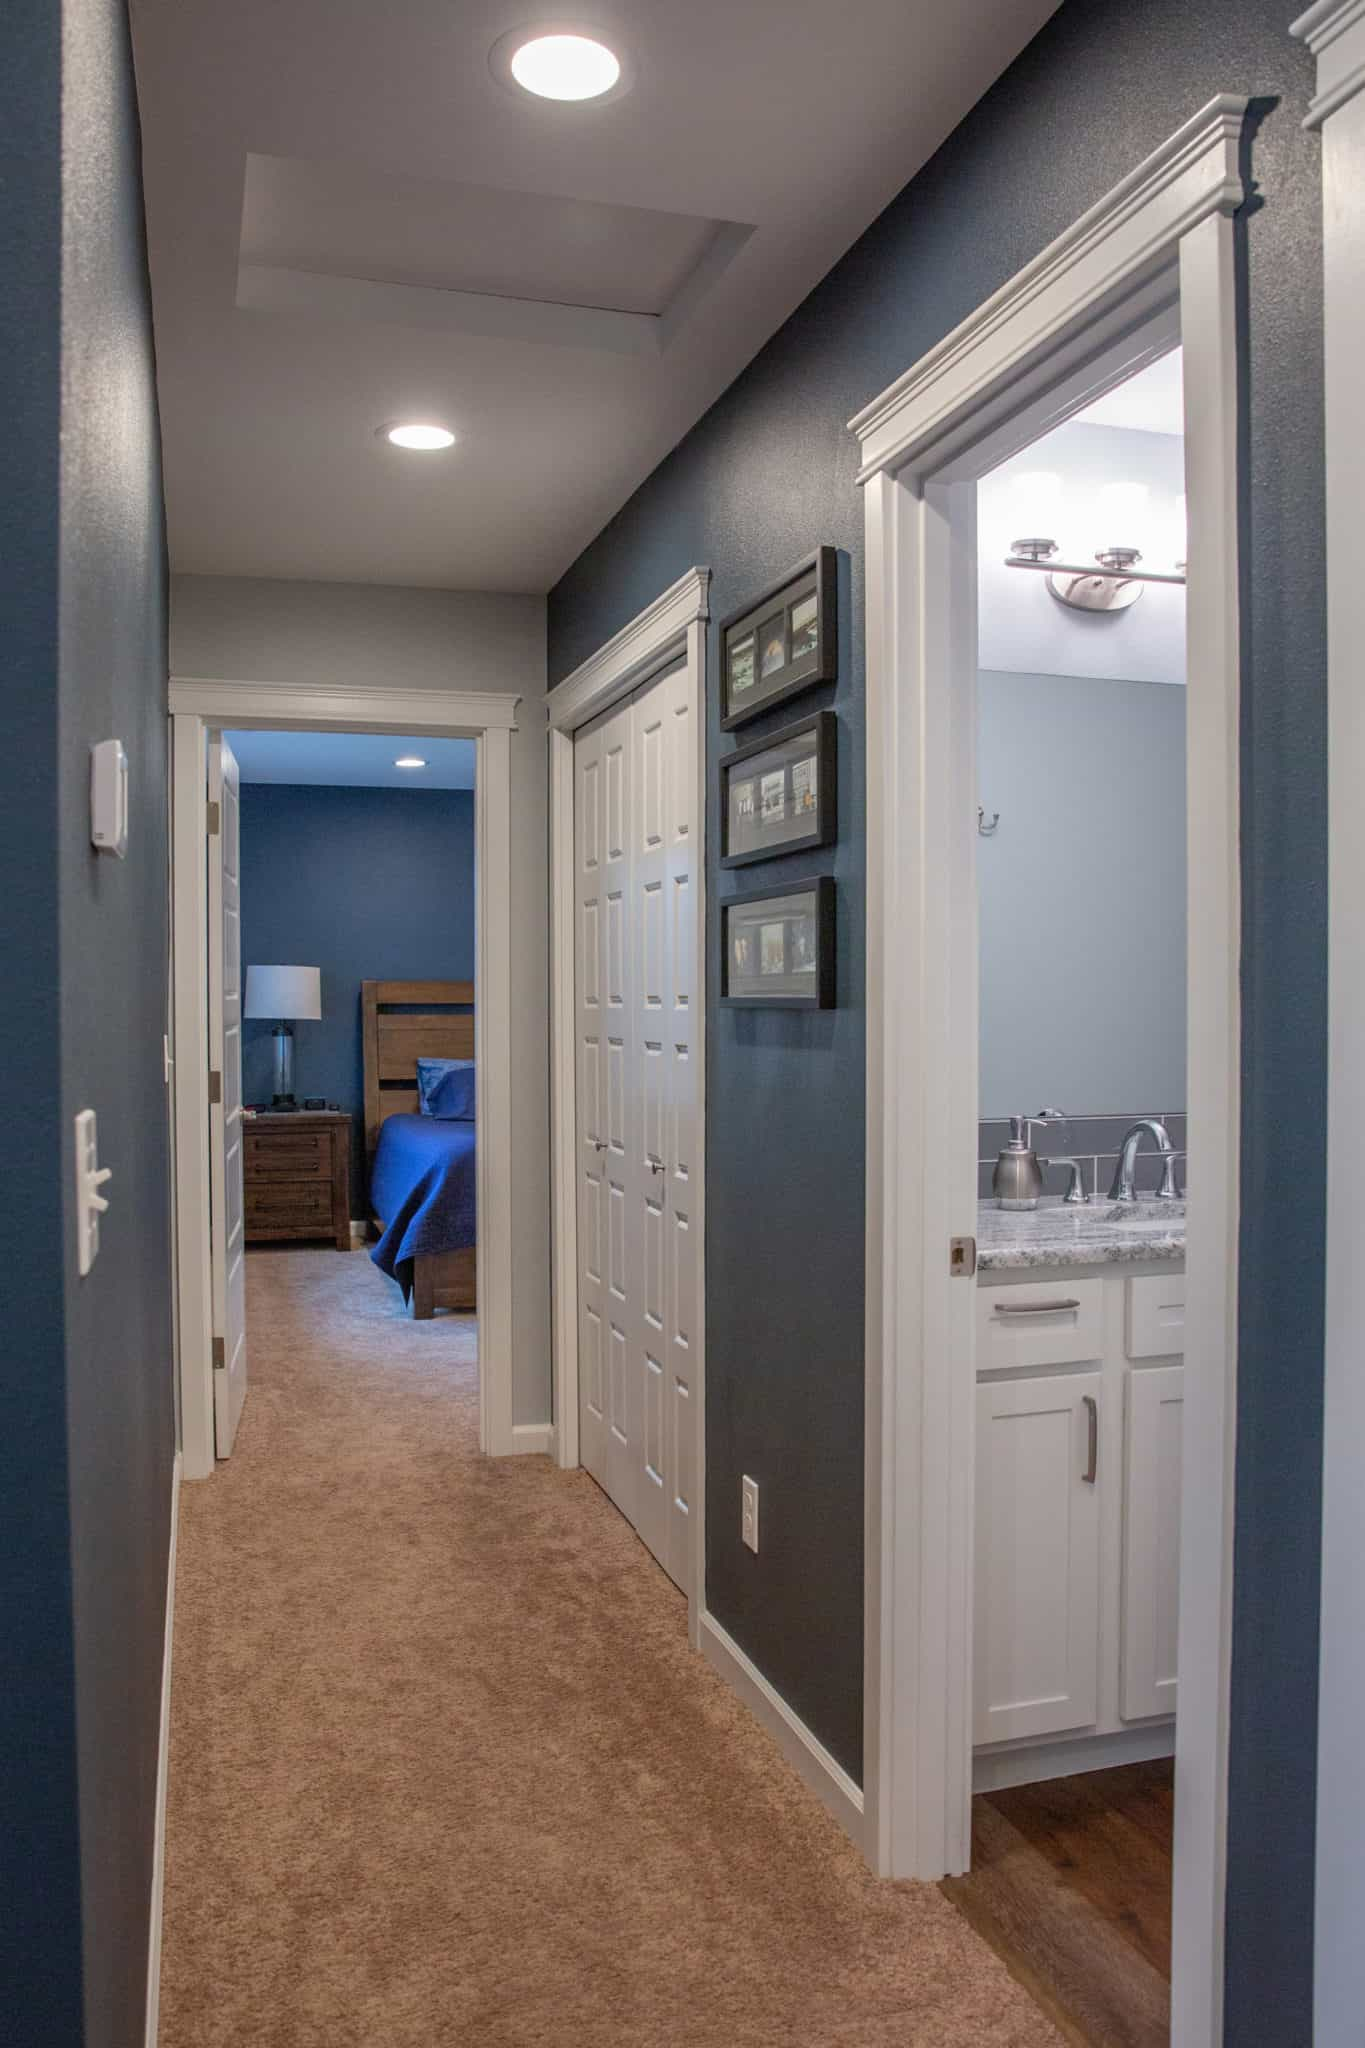 Photo Gallery of Recently Built Homes - True Built Home on 4 bed 2 bath home, 2 bed 2 bath home, 3 bed open floor plan,